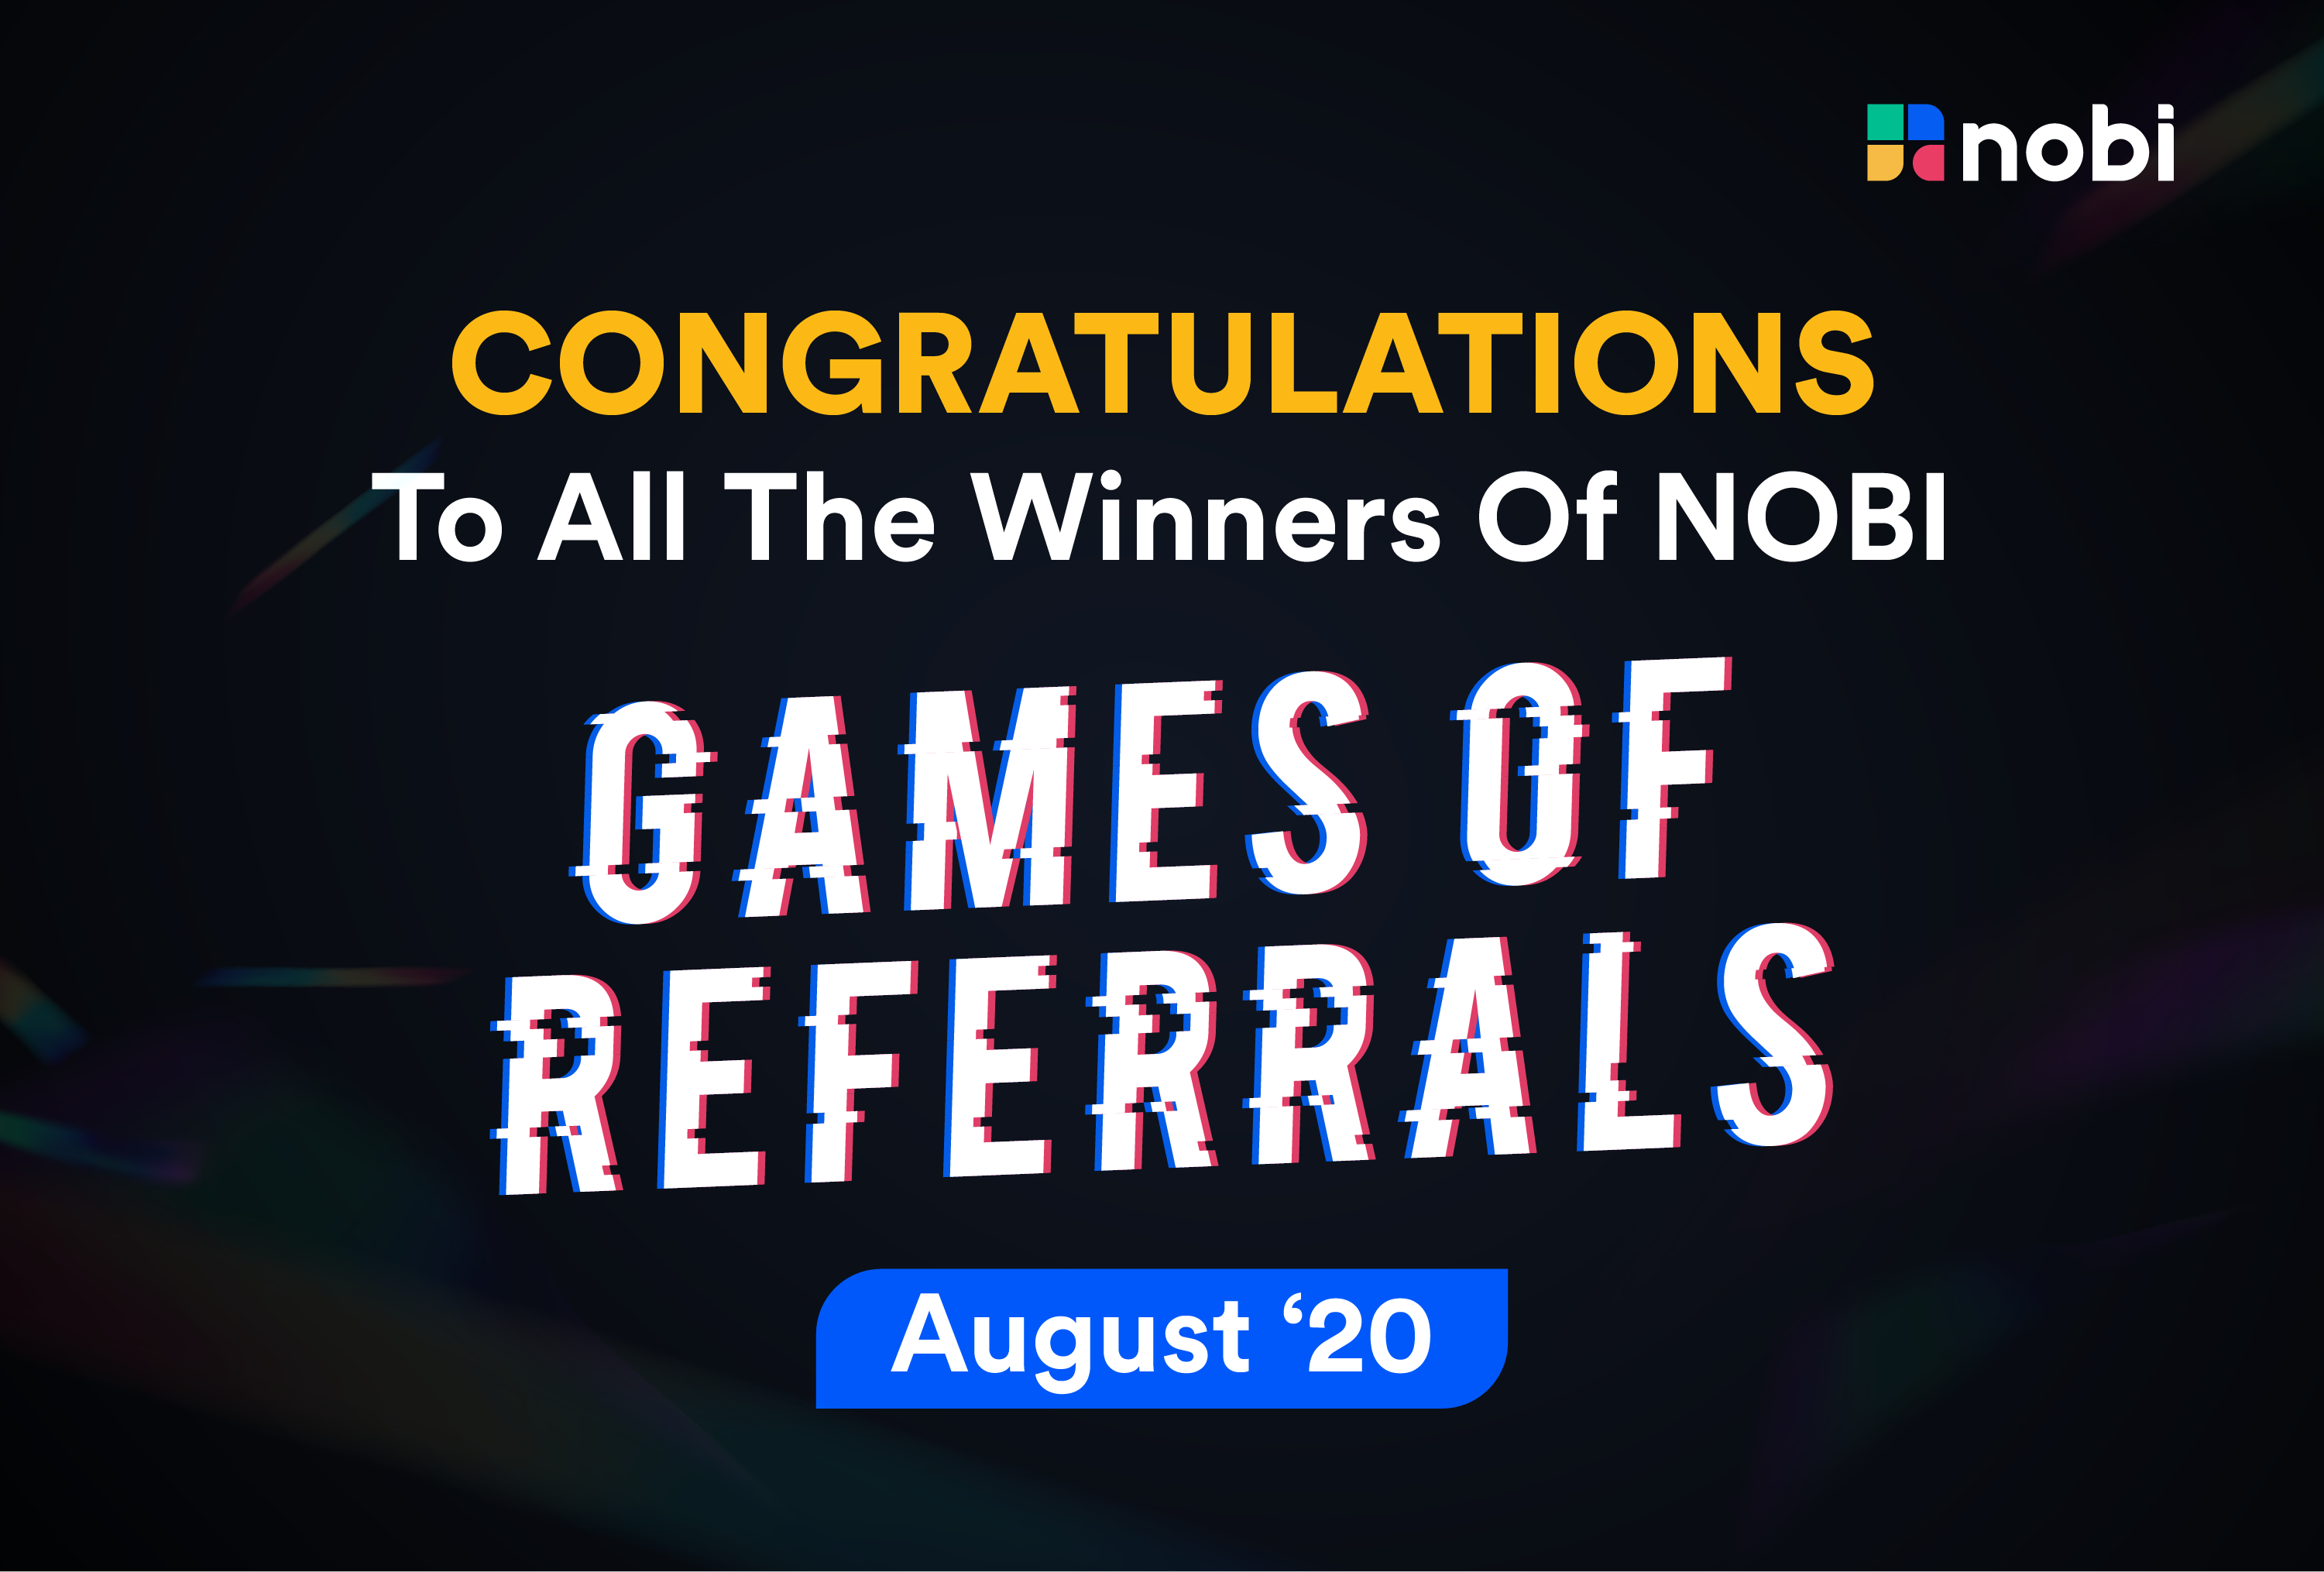 NOBI Games of Referrals